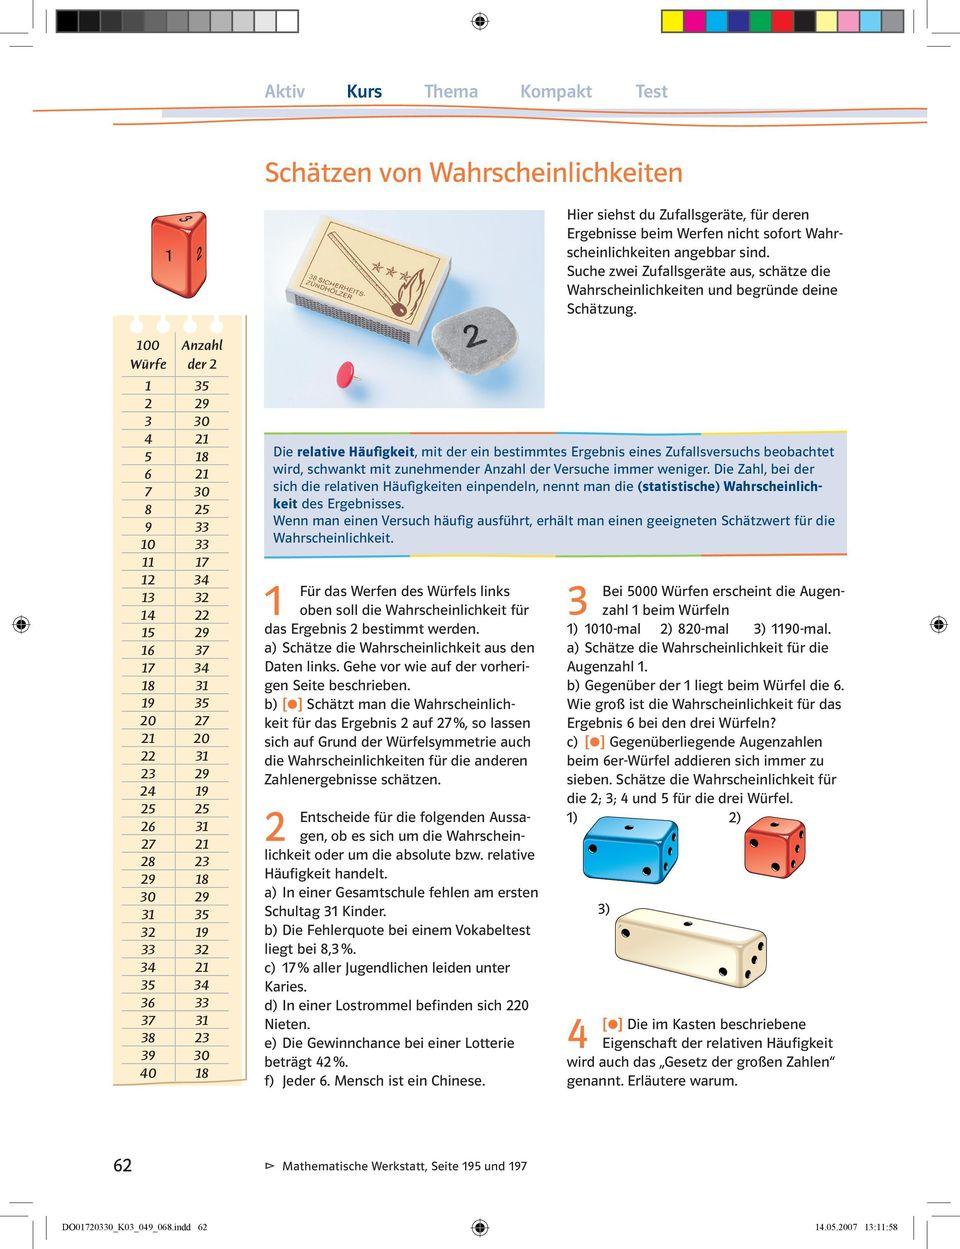 English-German Dictionary of Idioms: Supplement to the